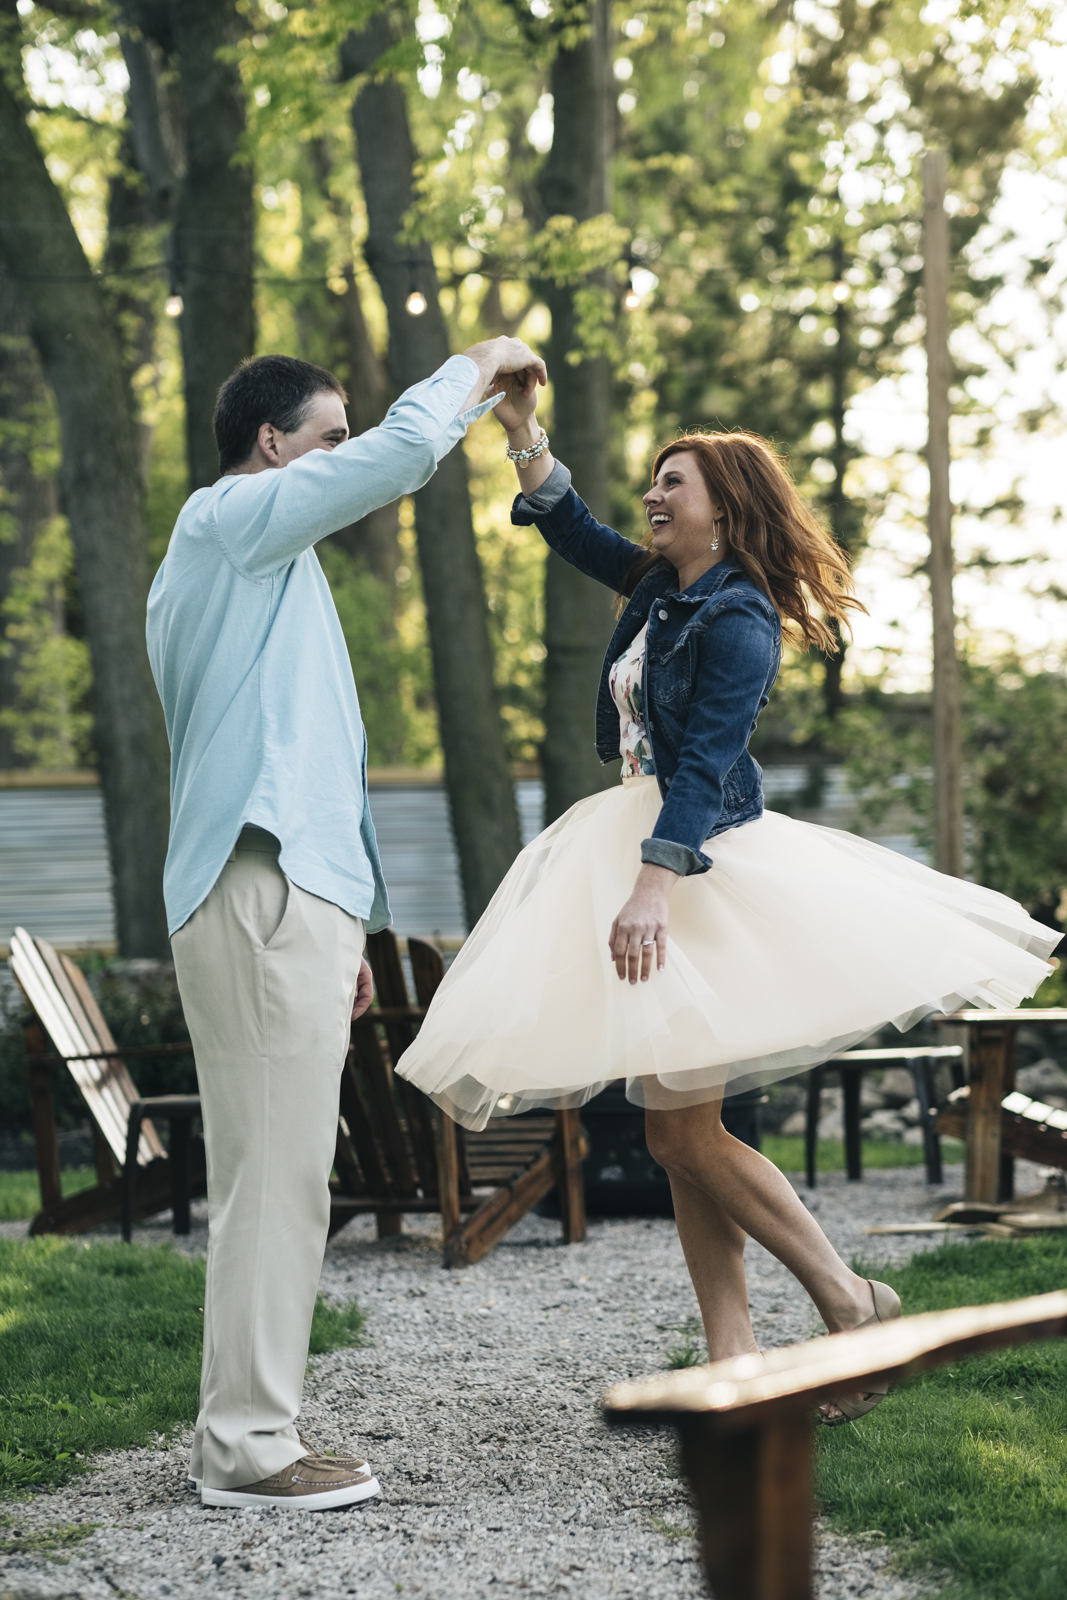 Engagement session in a tutu.